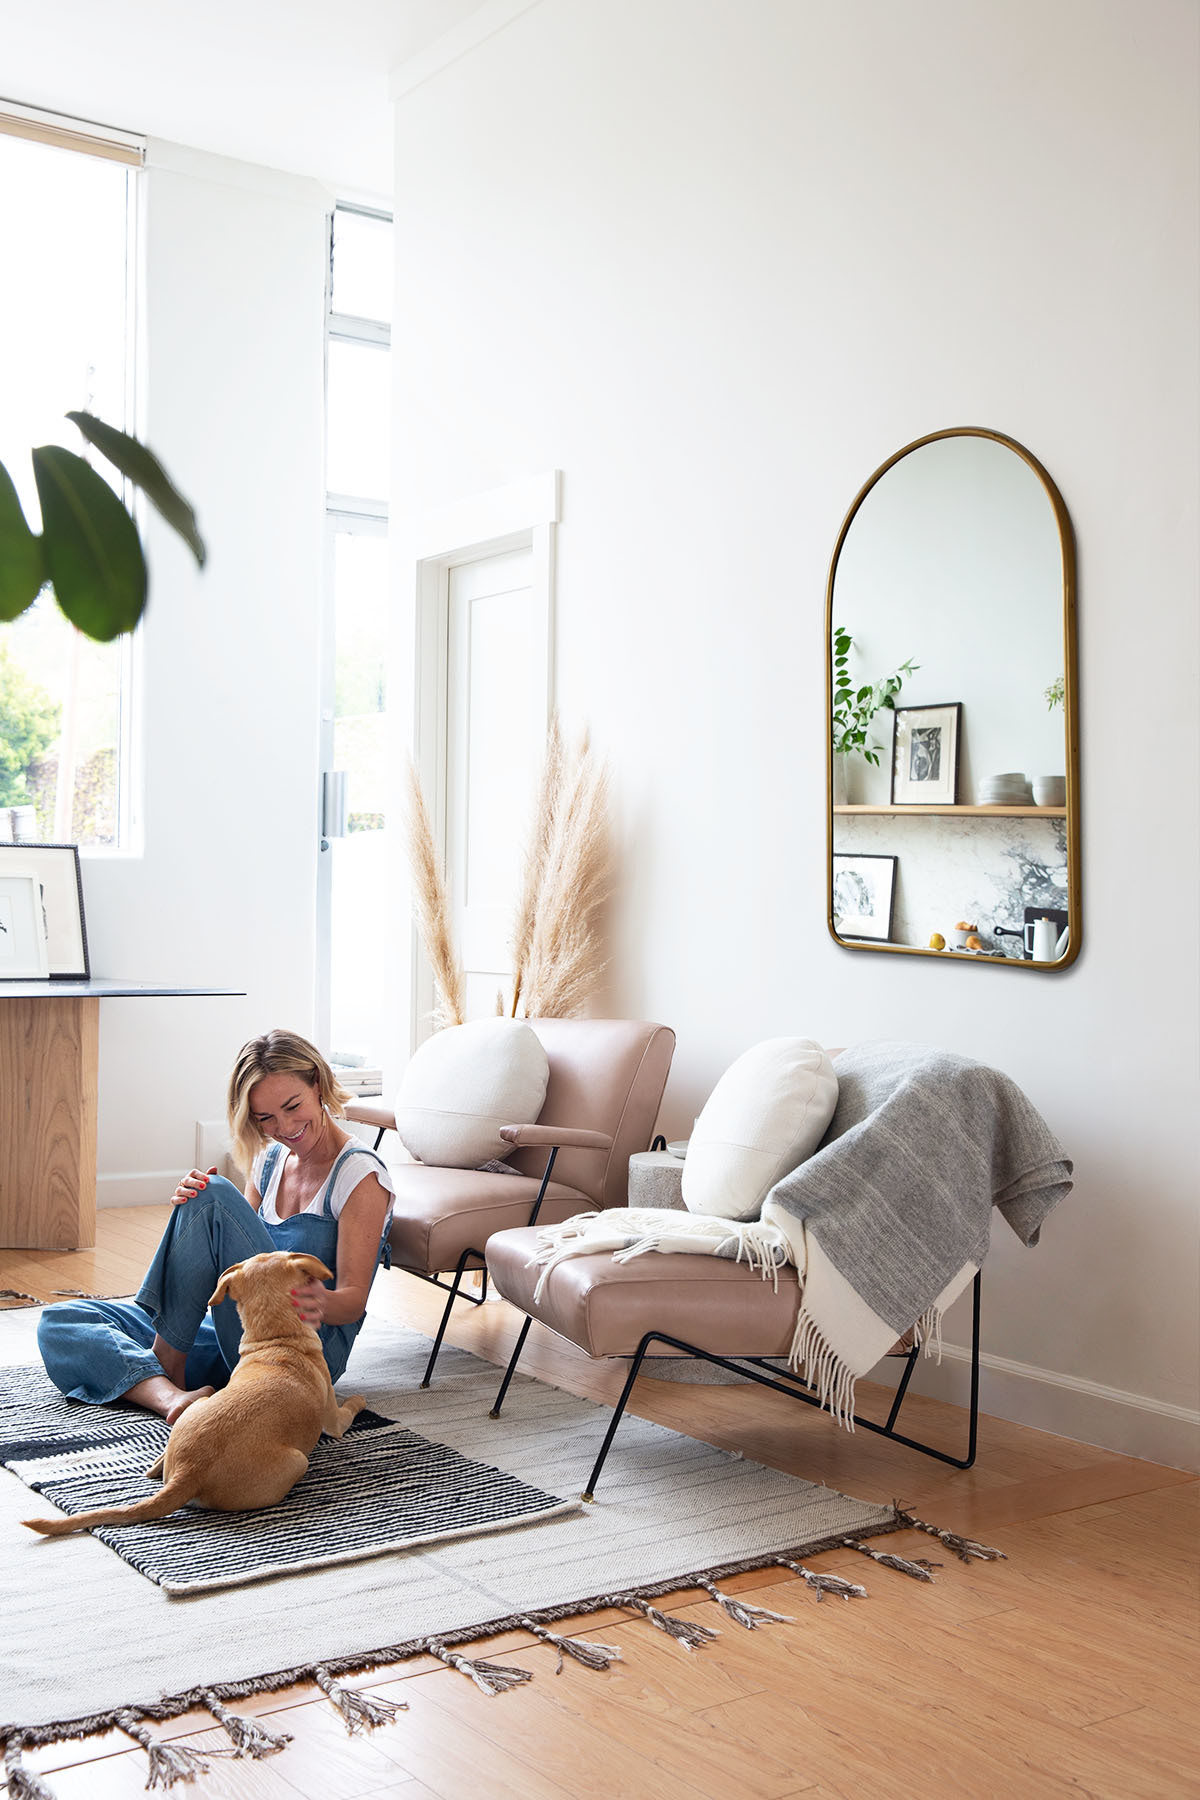 Nelson spent a year on the hunt for her ideal office space, adding a kitchen and busting down walls to ensure the studio floods with natural light. CB2 Rug | Vintage Rug | Chairish Vintage Armchairs| West Elm Pillows | HD Buttercup Throw | Zachary A Design Side Table | Rejuvenation Mirror.